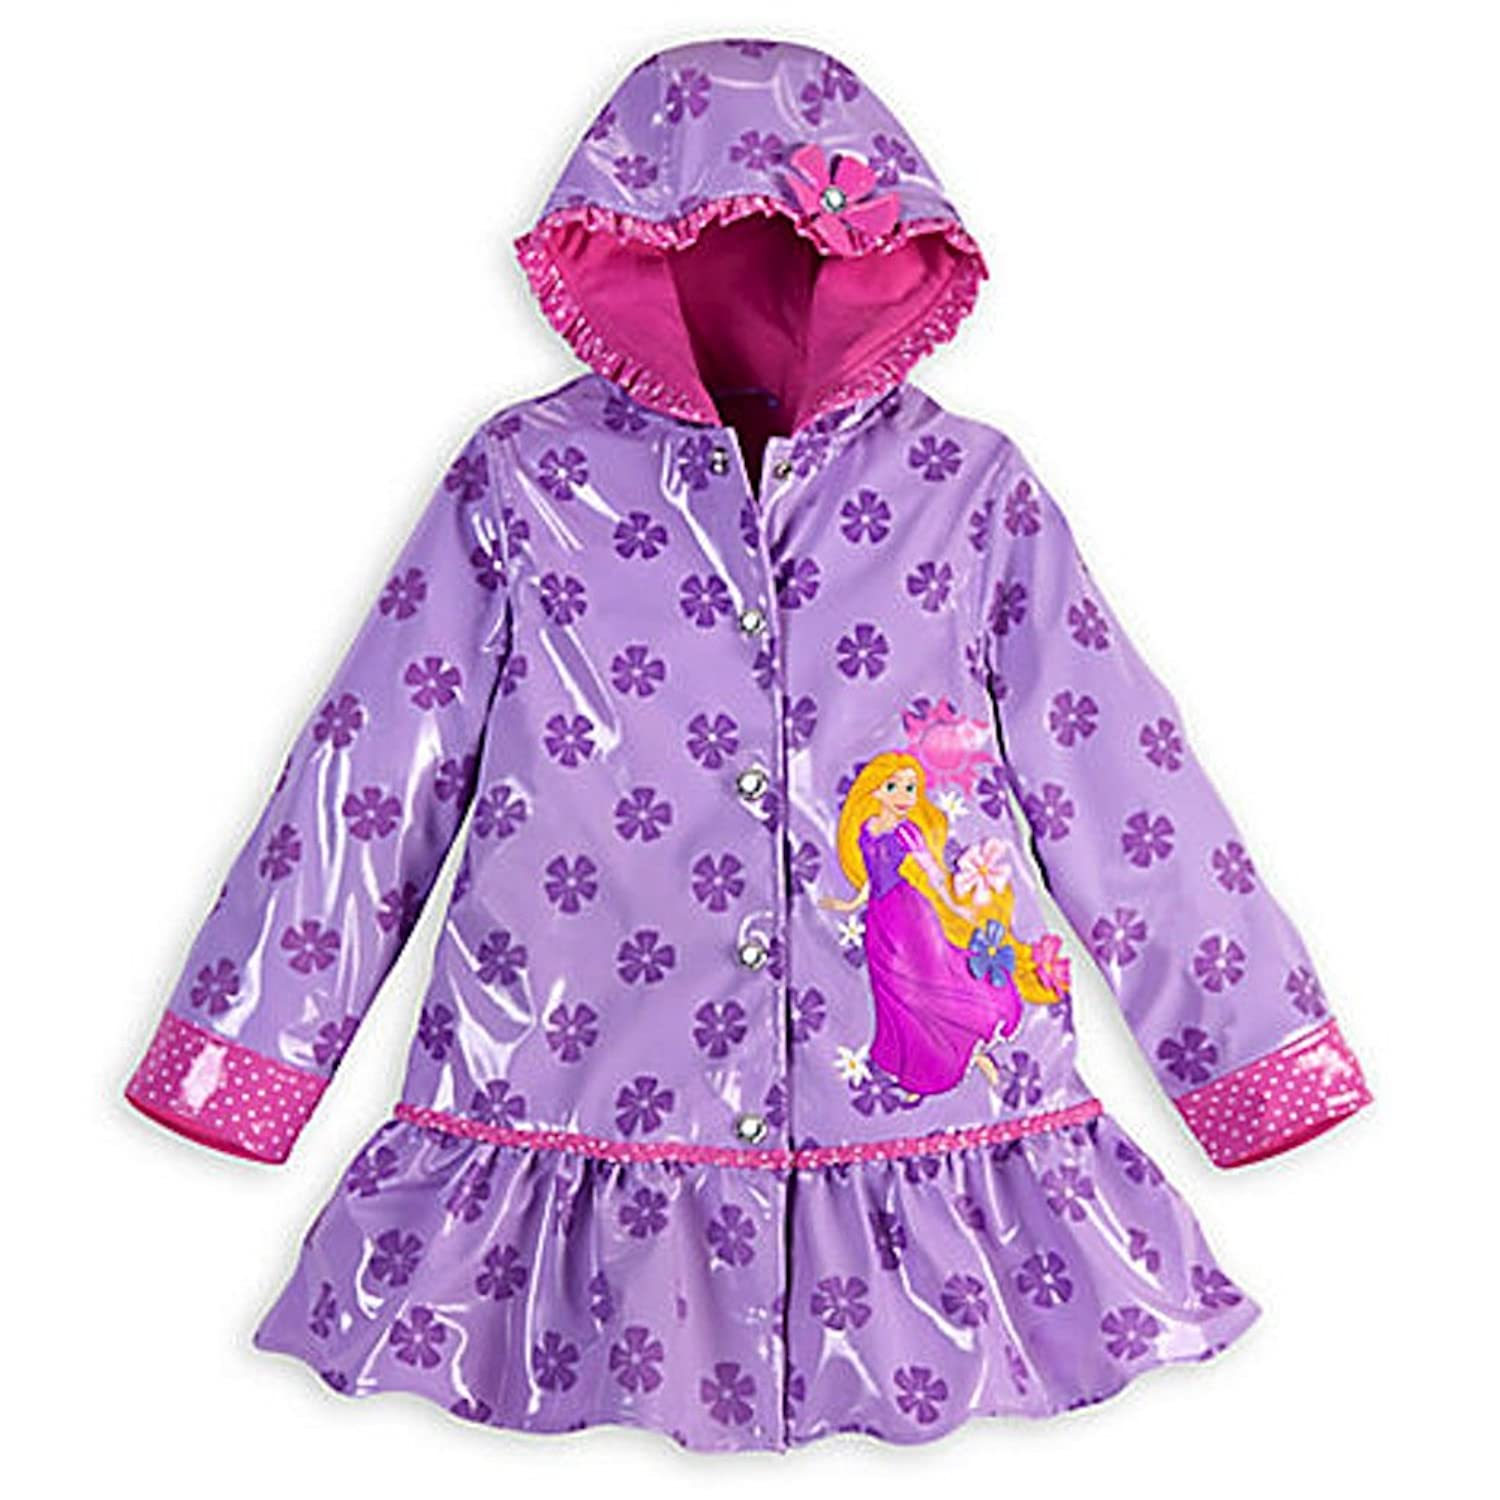 Amazon.com: Disney Store Rapunzel Tangled Rain Jacket for Girls ...